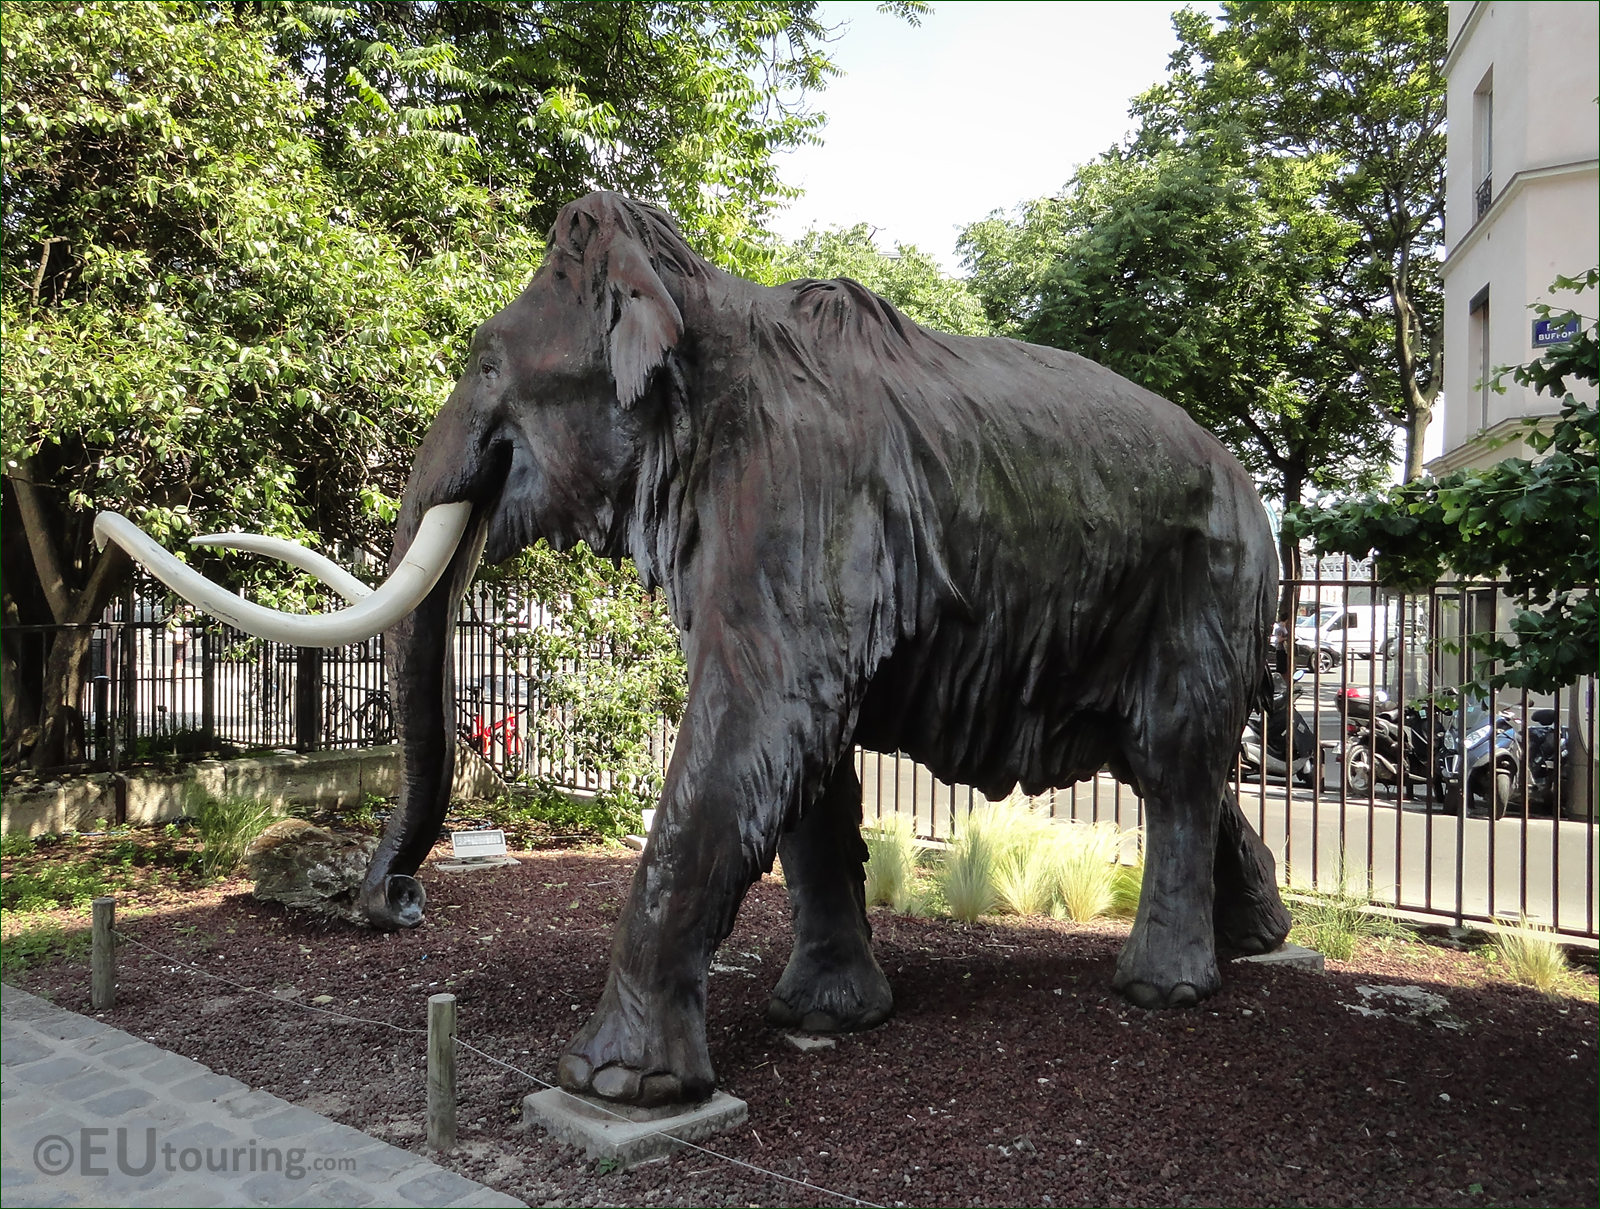 Hd Photos Of Woolly Mammoth Sculpture In Jardin Des Plantes Page 146